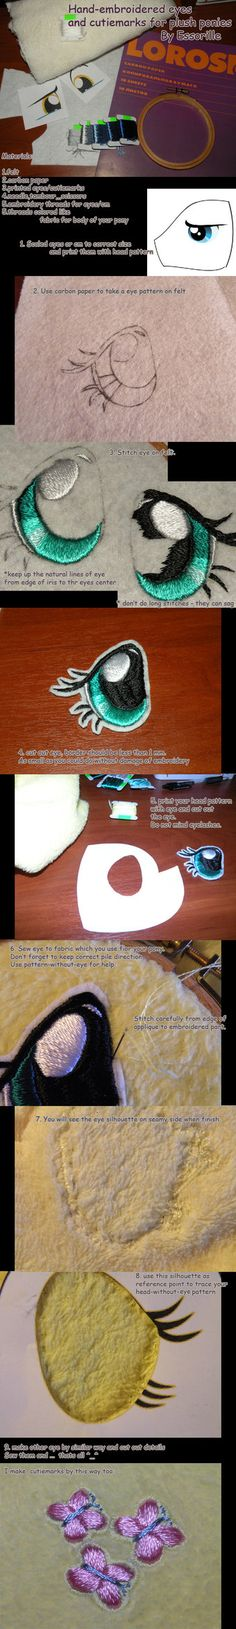 Sewing Animals Projects hand-embroidered plush eyes tutorial by *Essorille , How to Embroider My Little Pony Eyes, My Little Pony Plushie Tutorial , Animal Plushies, Softies Sewing Tutorials, Sewing Crafts, Sewing Patterns, Sewing Diy, Diy Crafts, Diy Art Projects, Sewing Projects, Plushie Patterns, Stuffed Animal Patterns